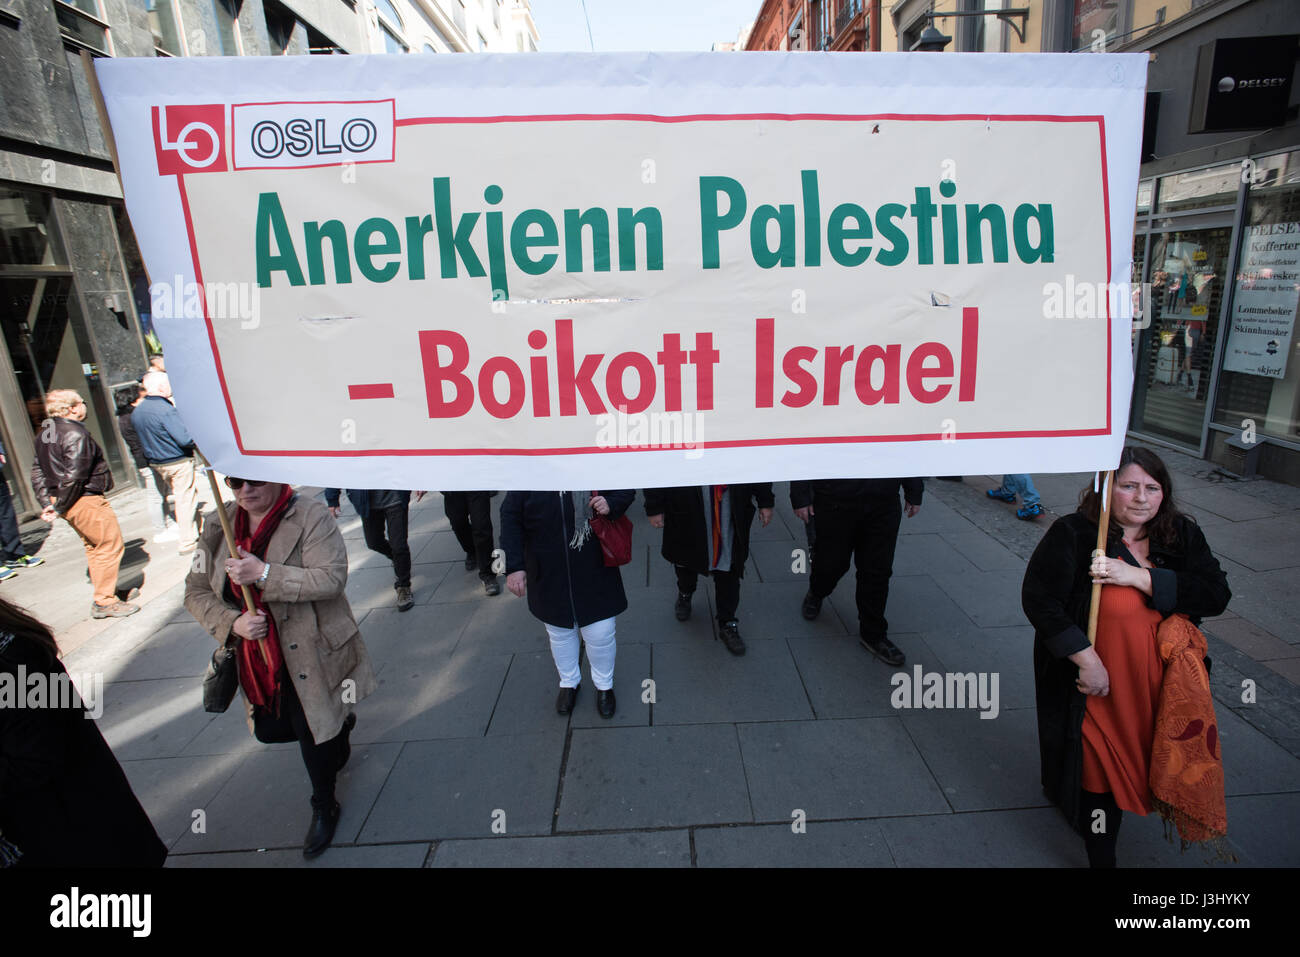 Activists carry a banner in Norwegian: 'Recognize Palestine - Boycott Israel' at the annual May Day march - Stock Image